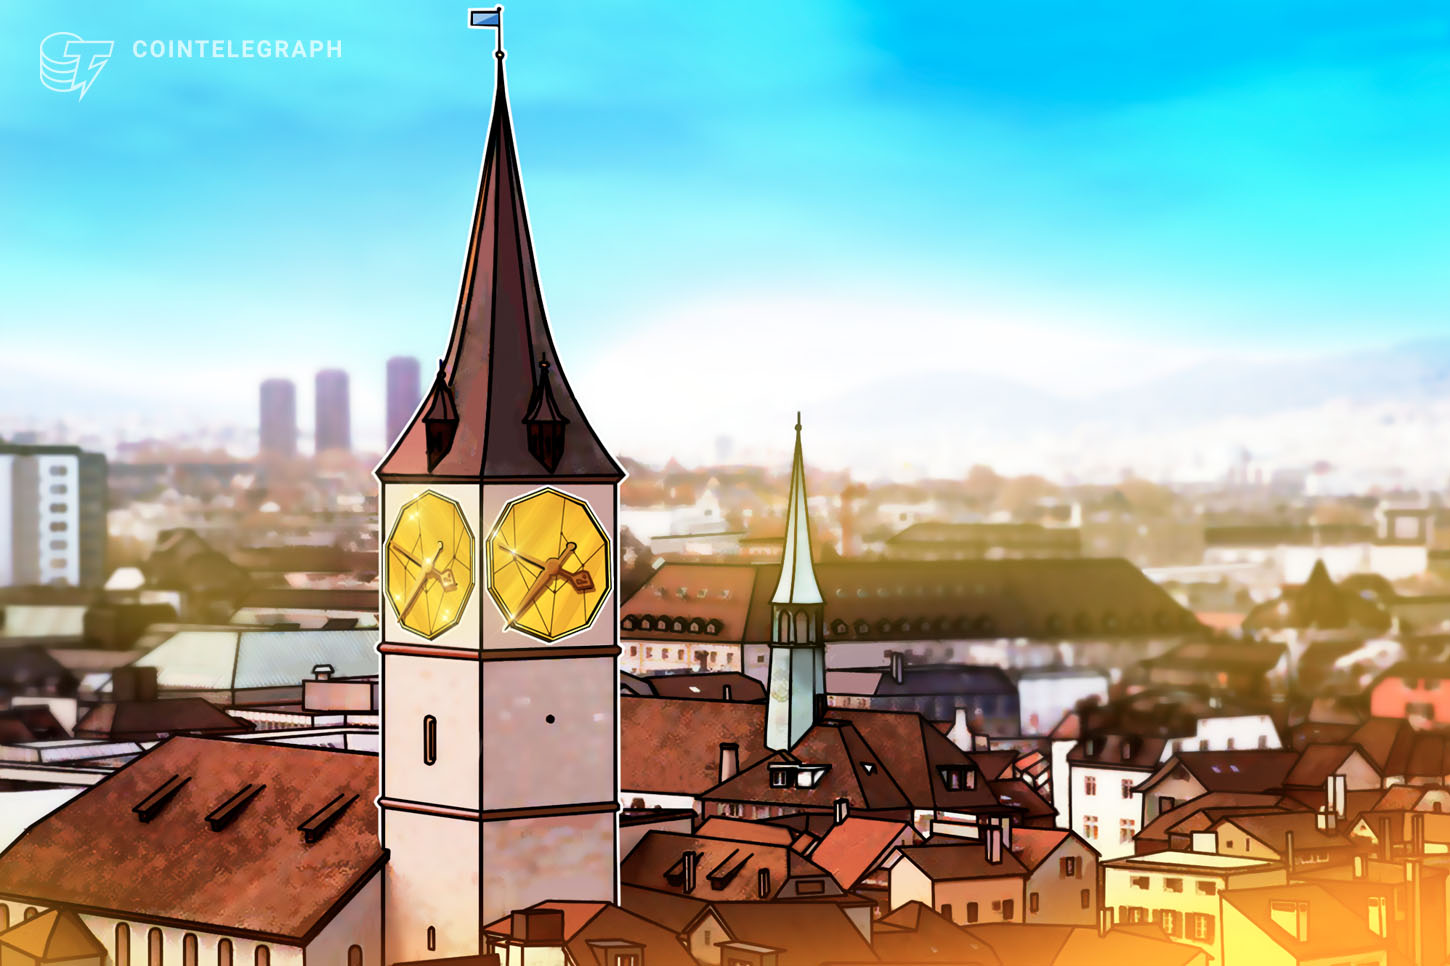 After Switzerland Visit, Crypto Concerns Remain For US